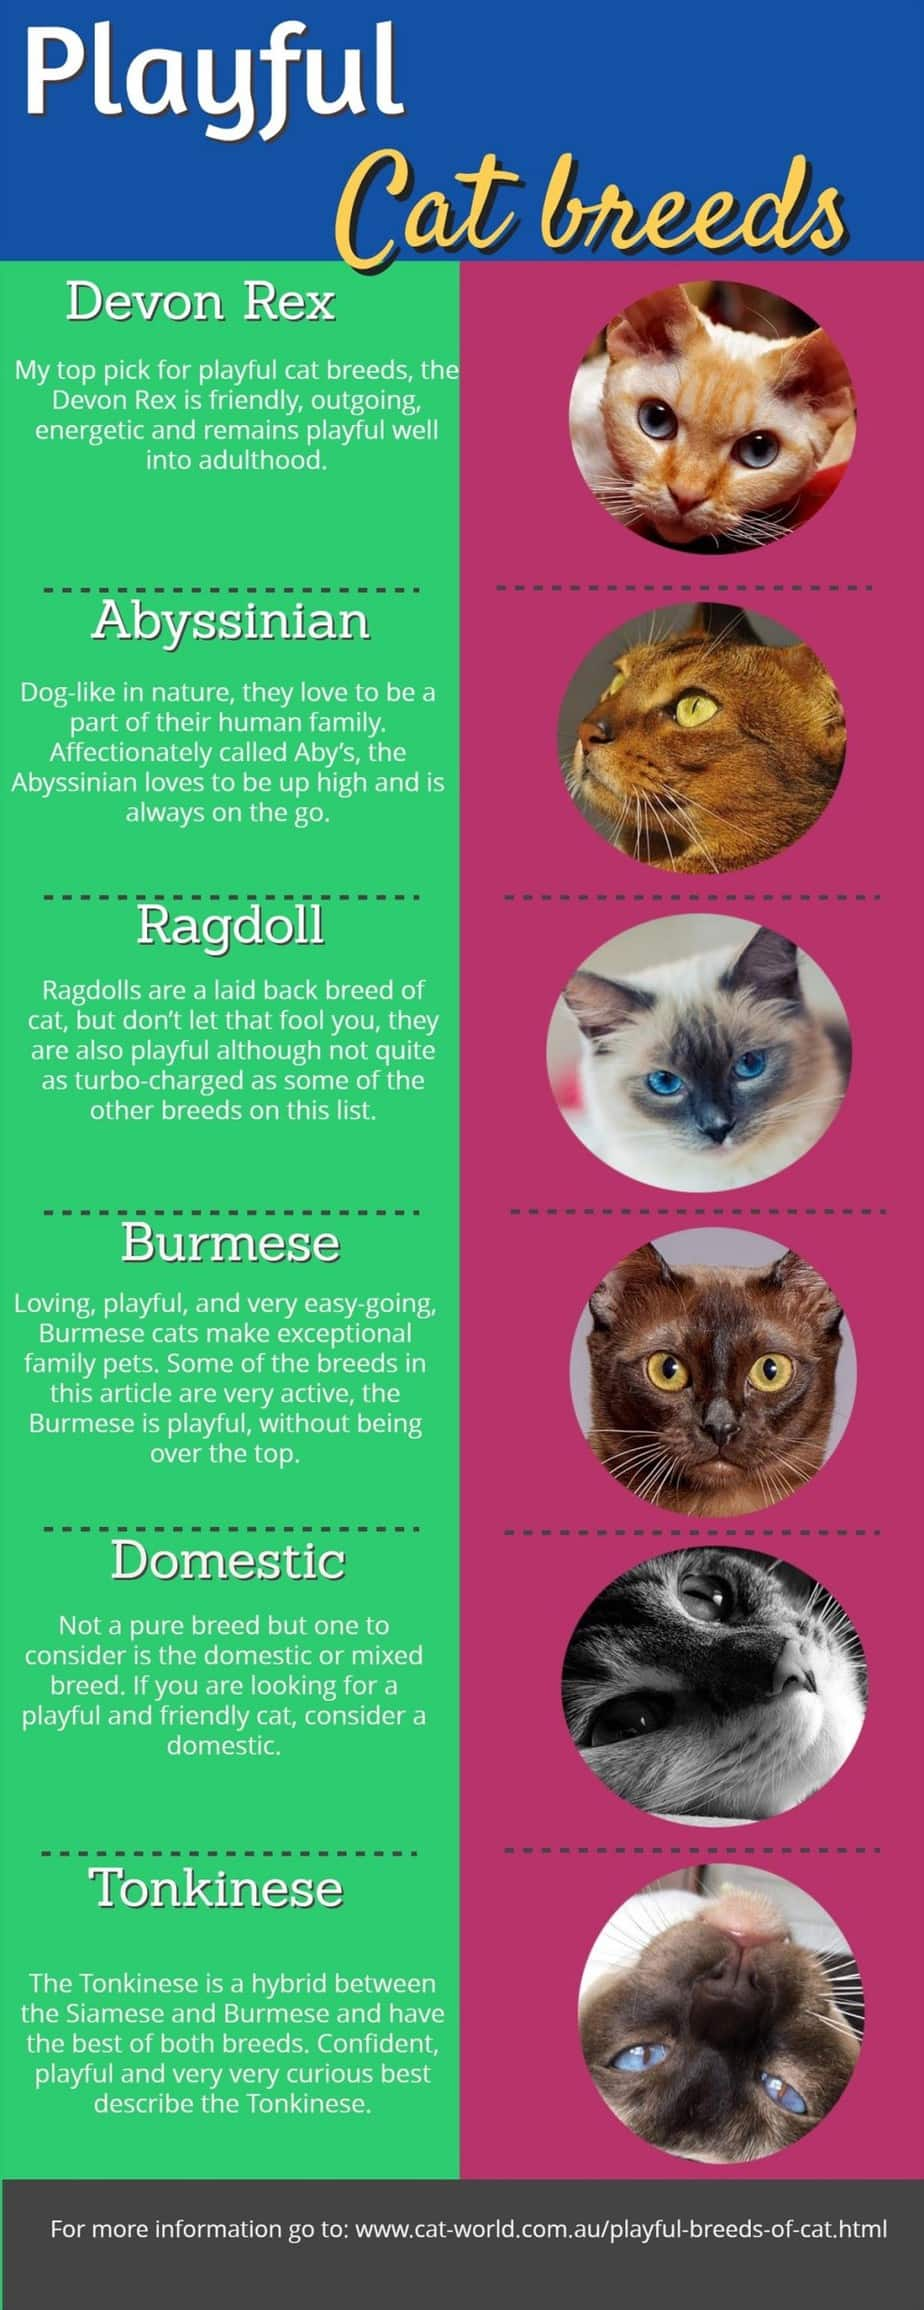 Playful cat breeds